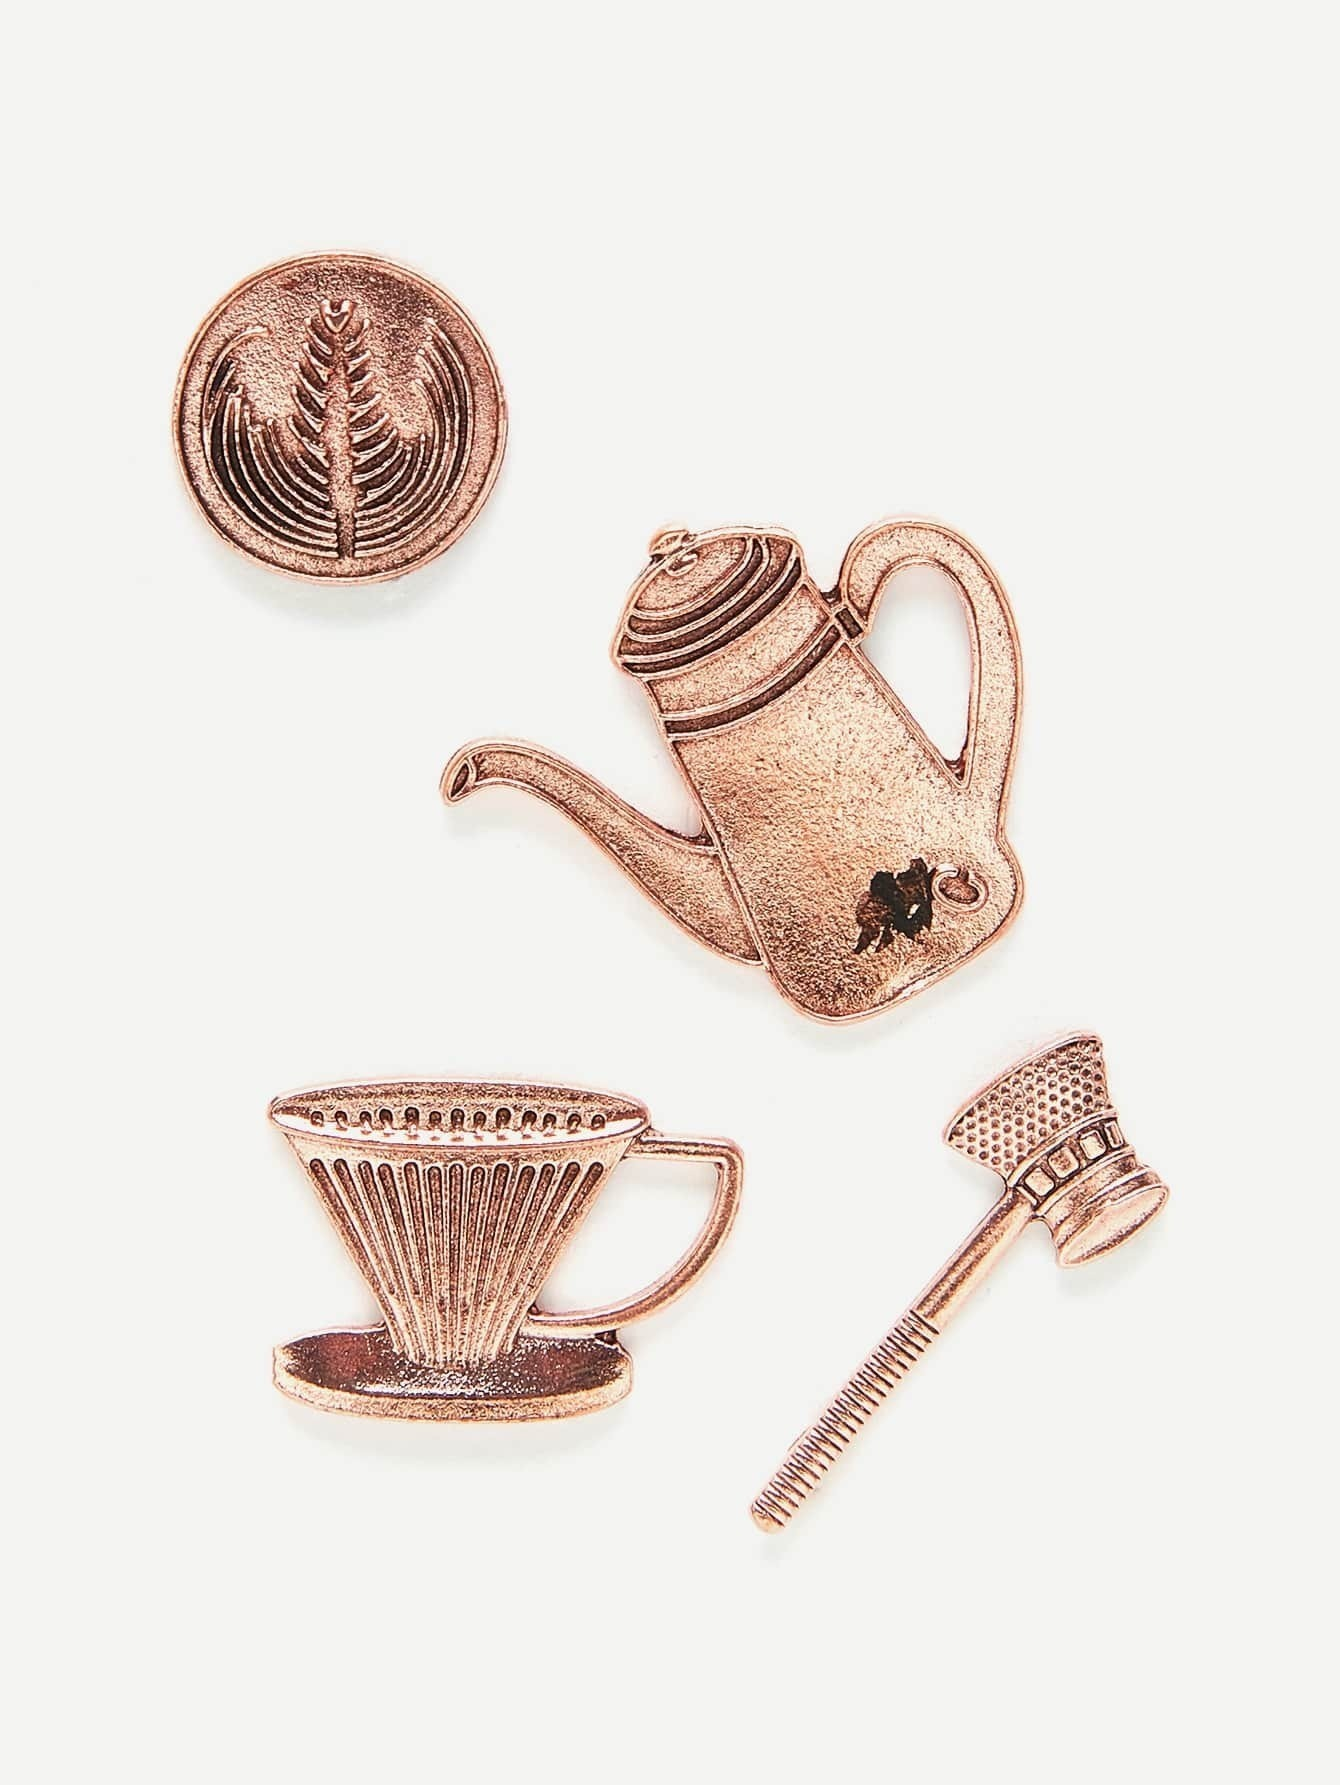 Teapot & Cup Design Brooch Set brooch180313314